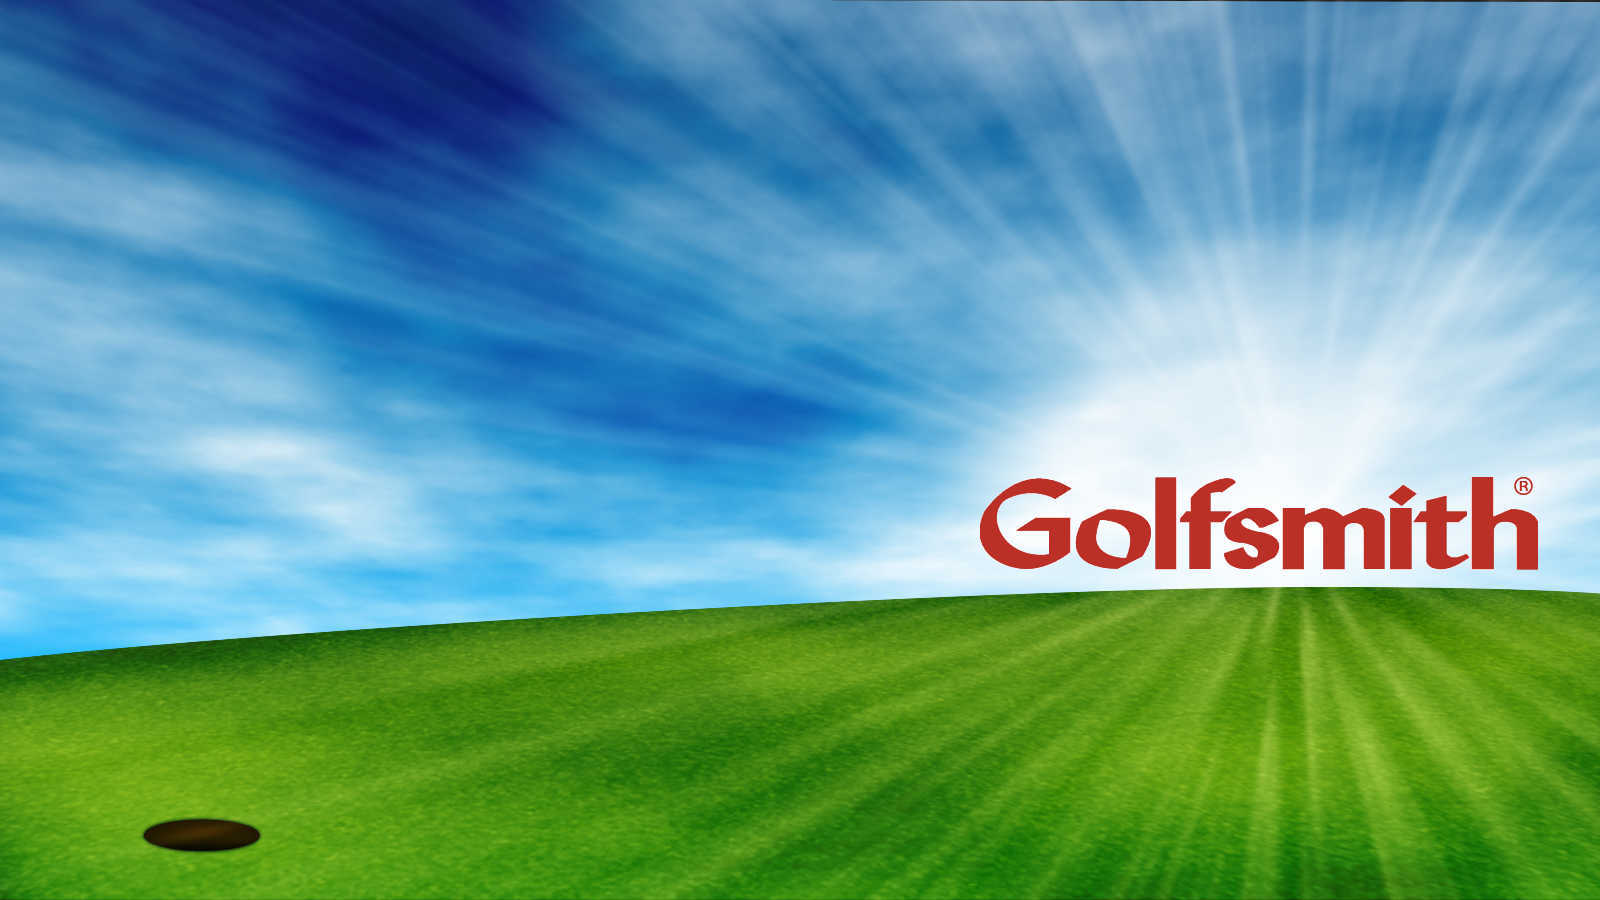 Golfsmith hero image